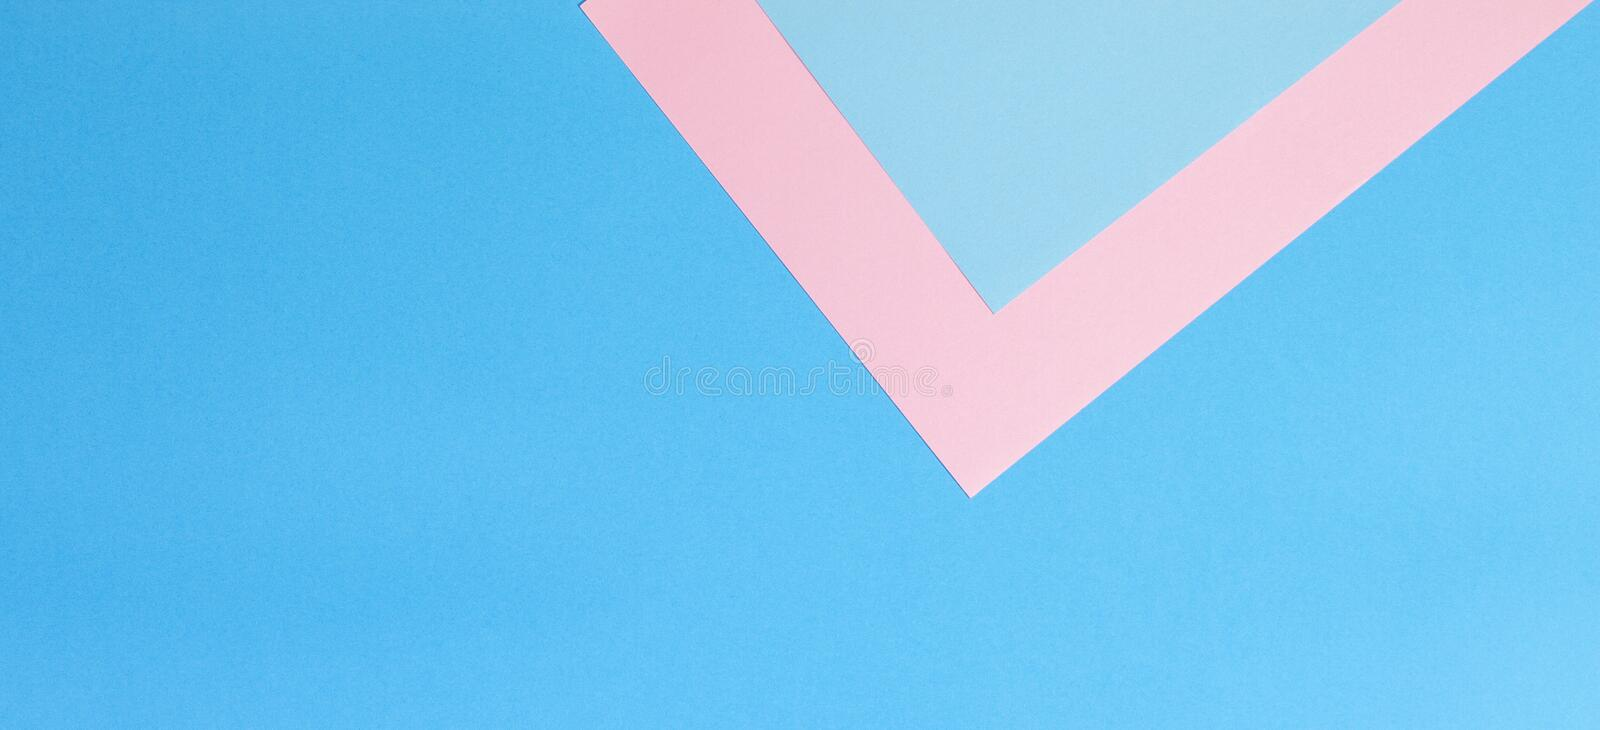 Color papers geometry flat composition background with pink and blue tones. Color papers geometry flat composition banner background with pink and blue tones royalty free stock photos